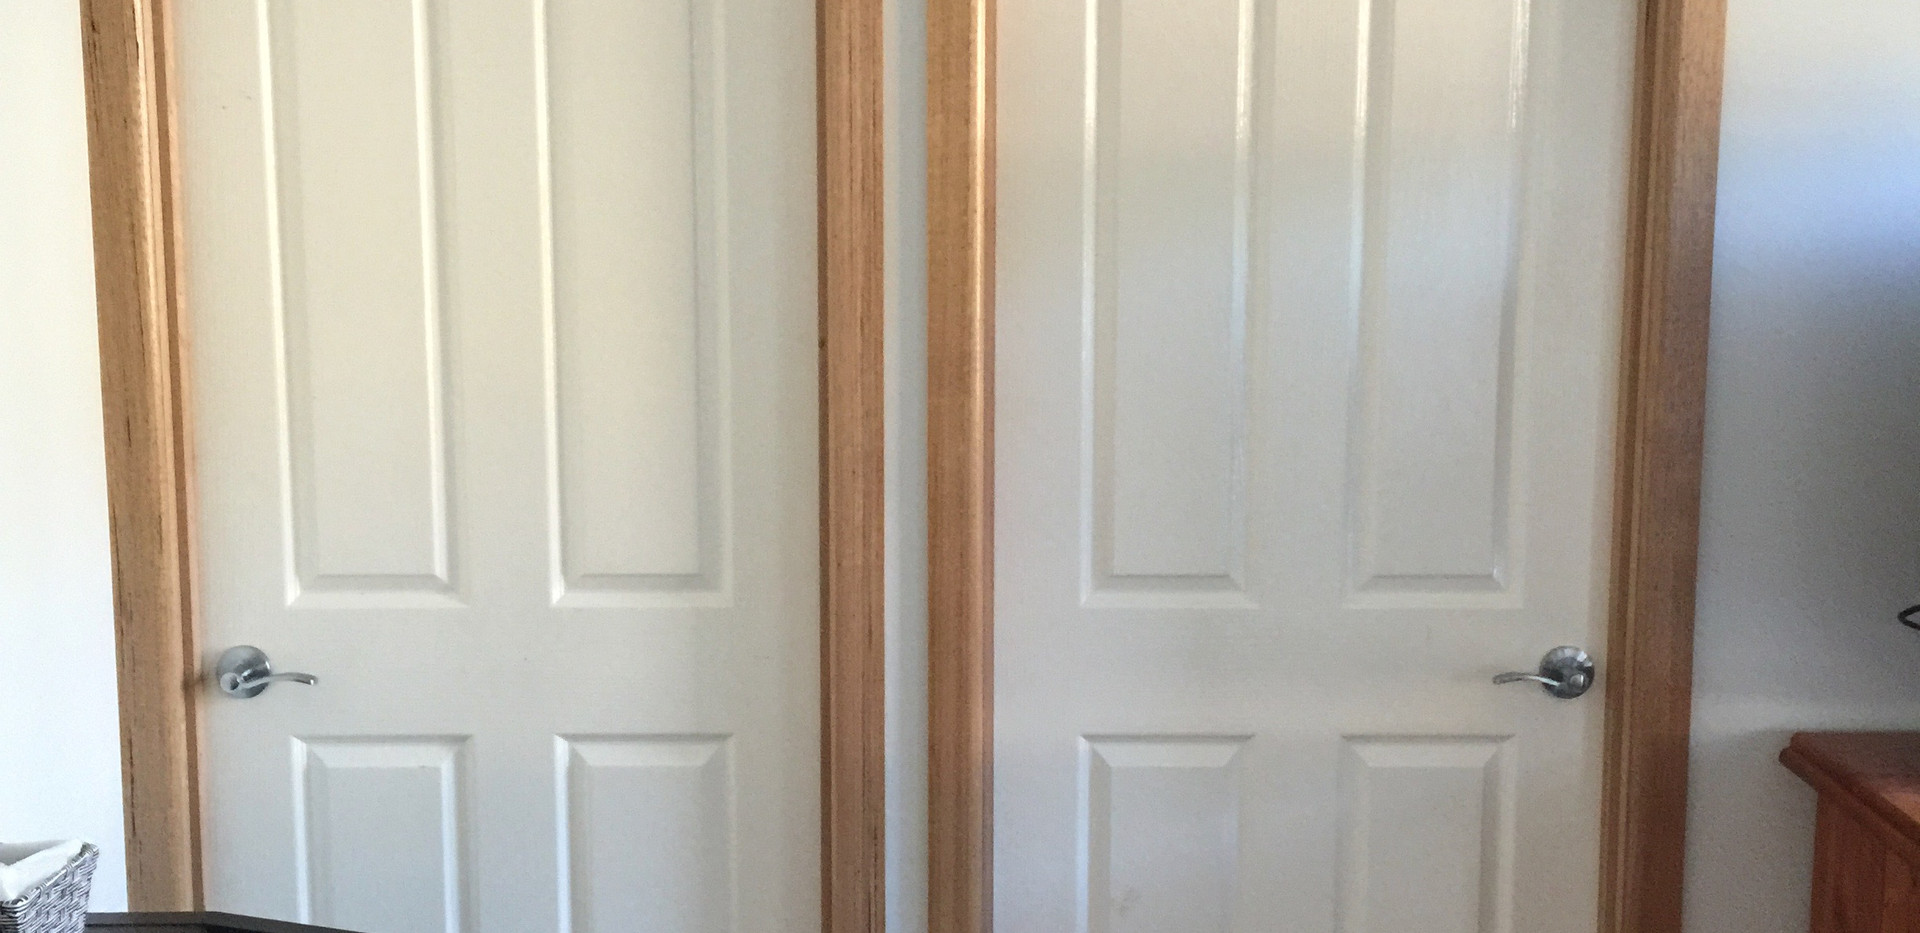 Door Finishing / Architrave